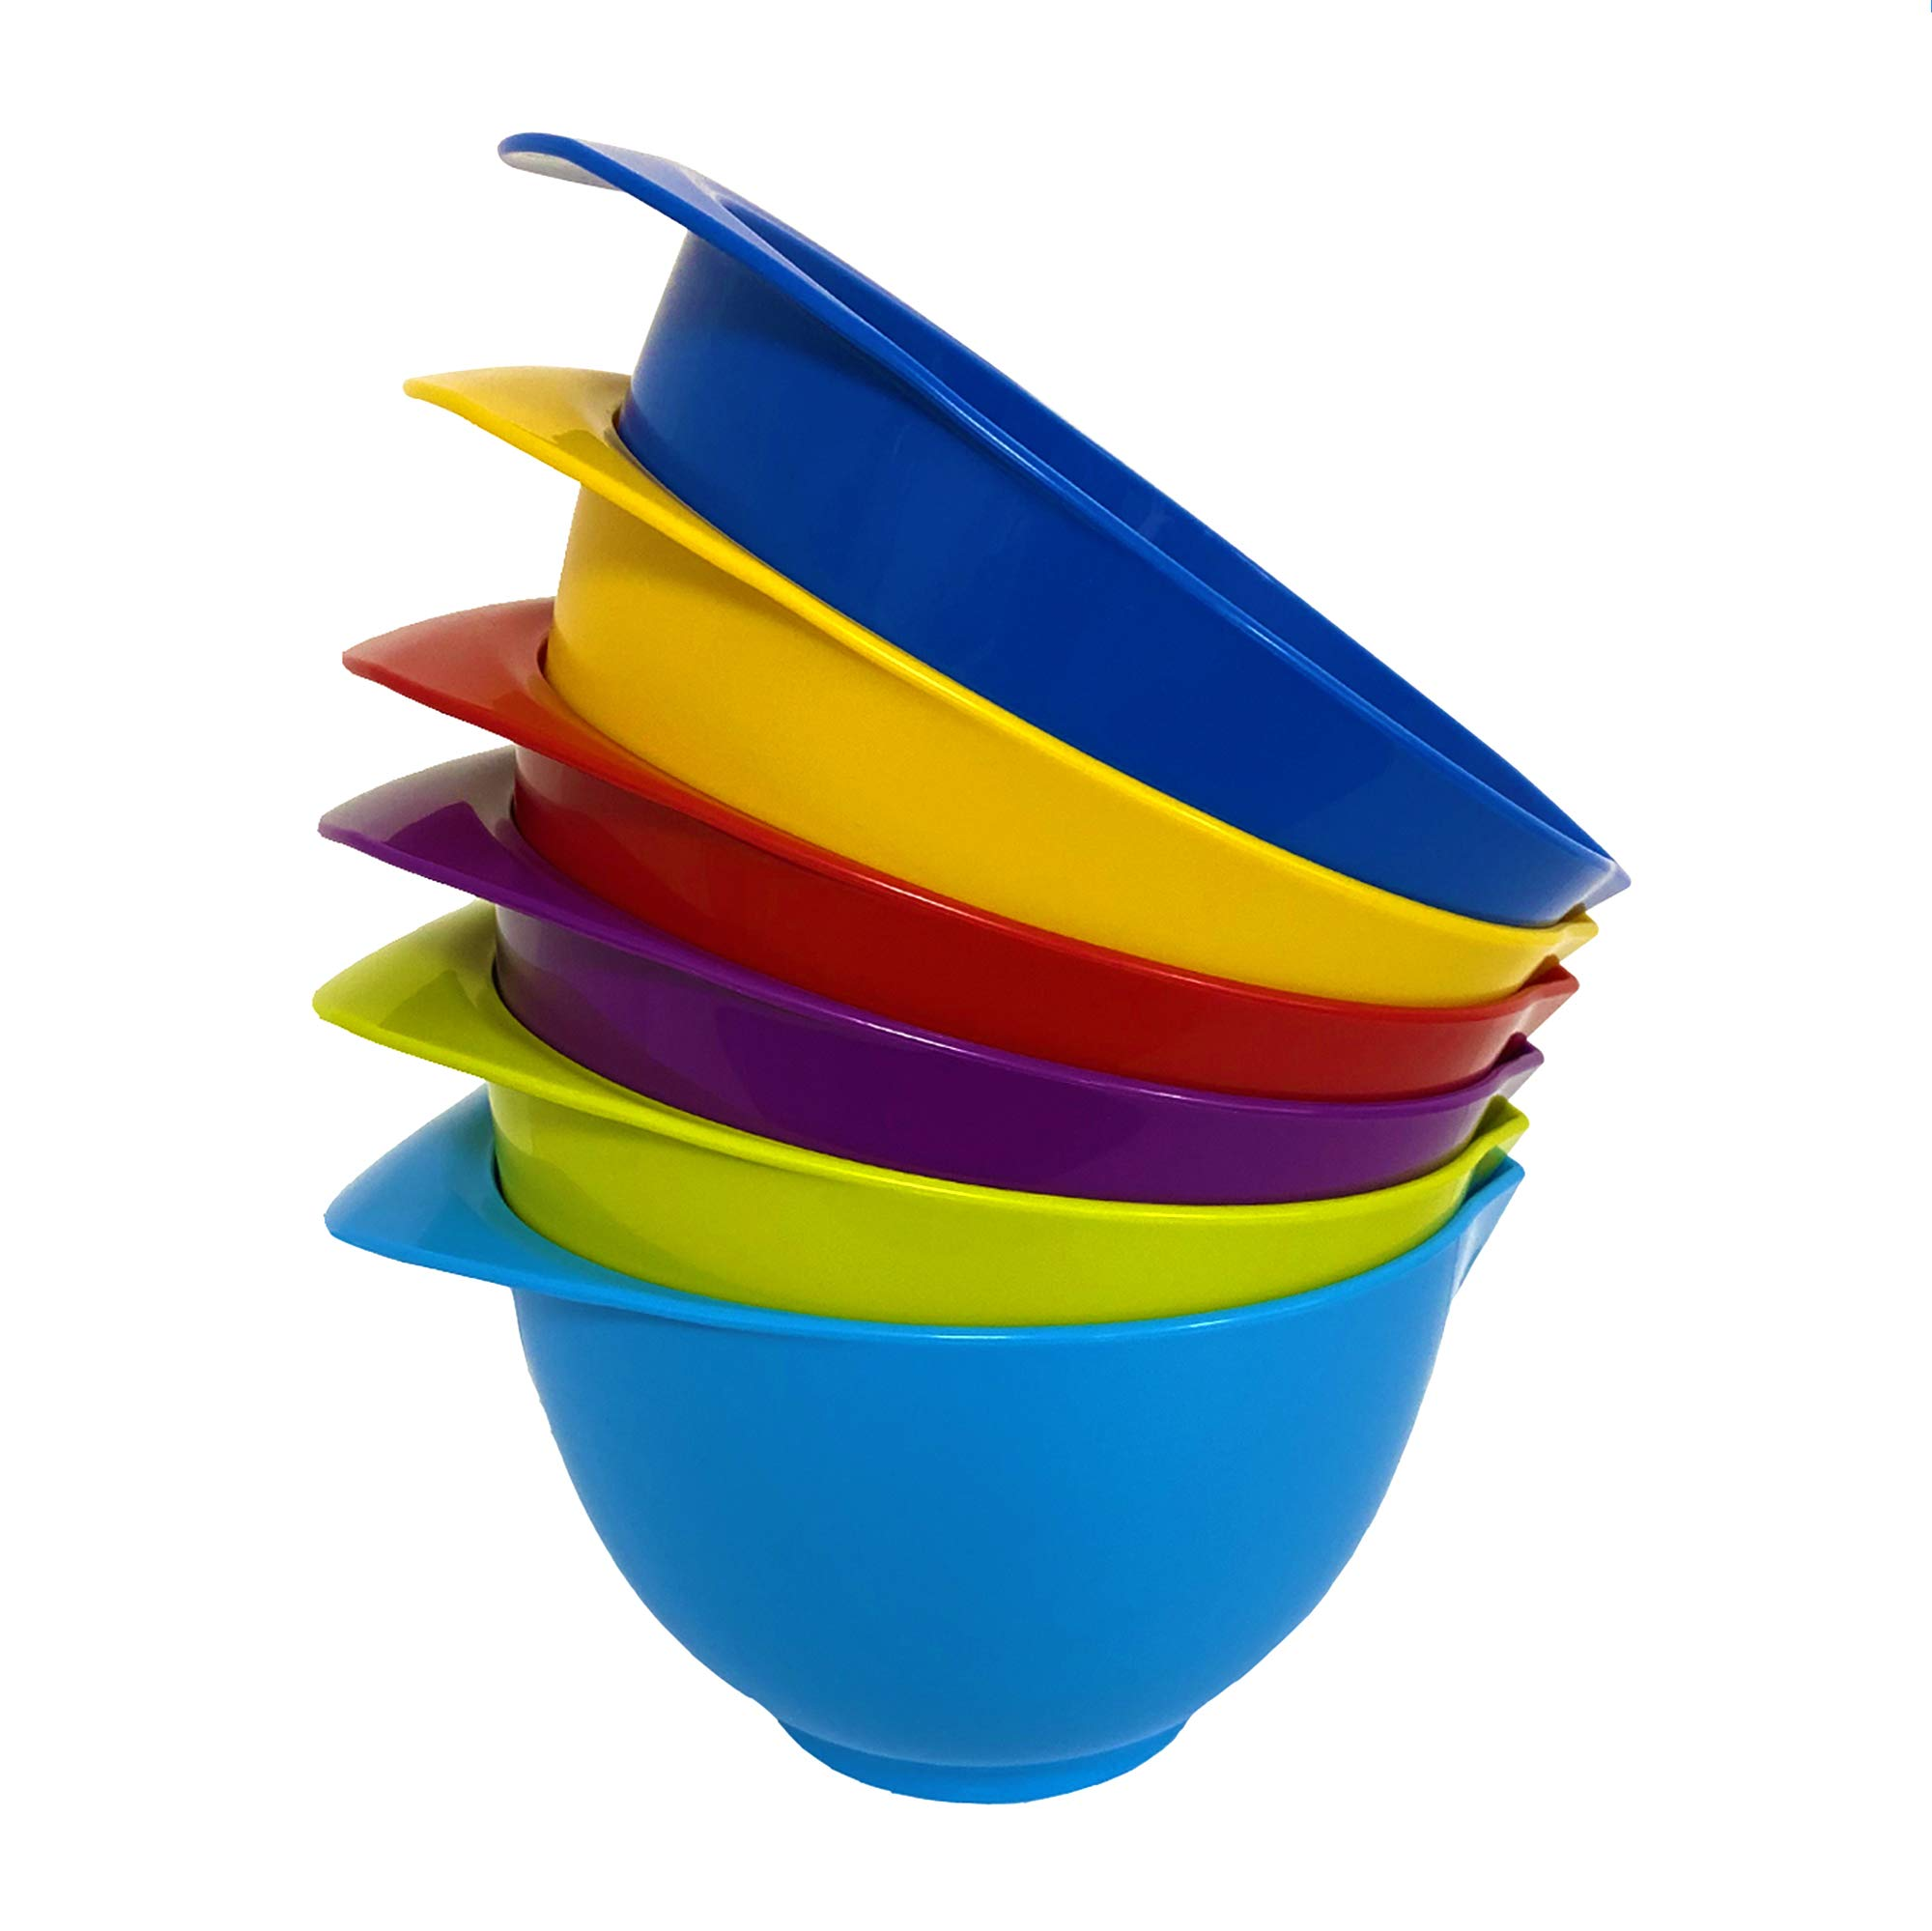 Mixing Bowl with spout and Handle | Set of 6 - Red, Blue, Purple, Green, Yellow, Light Blue | Beautifully Coloured Bowl Set | Compact, Stackable & Ergonomically Designed | Proudly Made in The UK